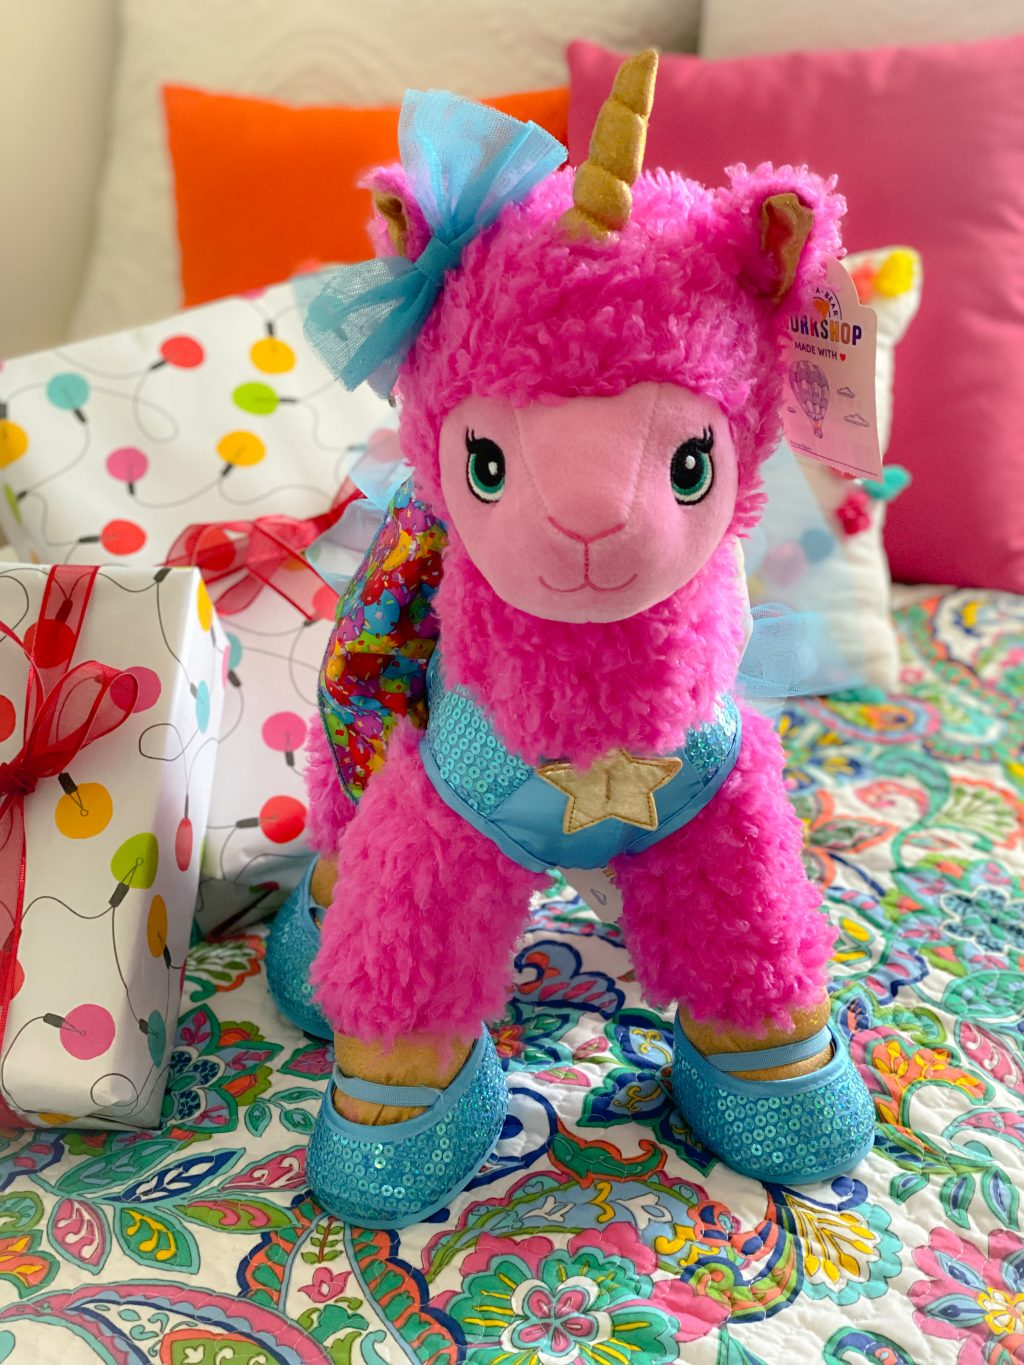 pink unicorn stuffed animal with white and red wrapped boxes